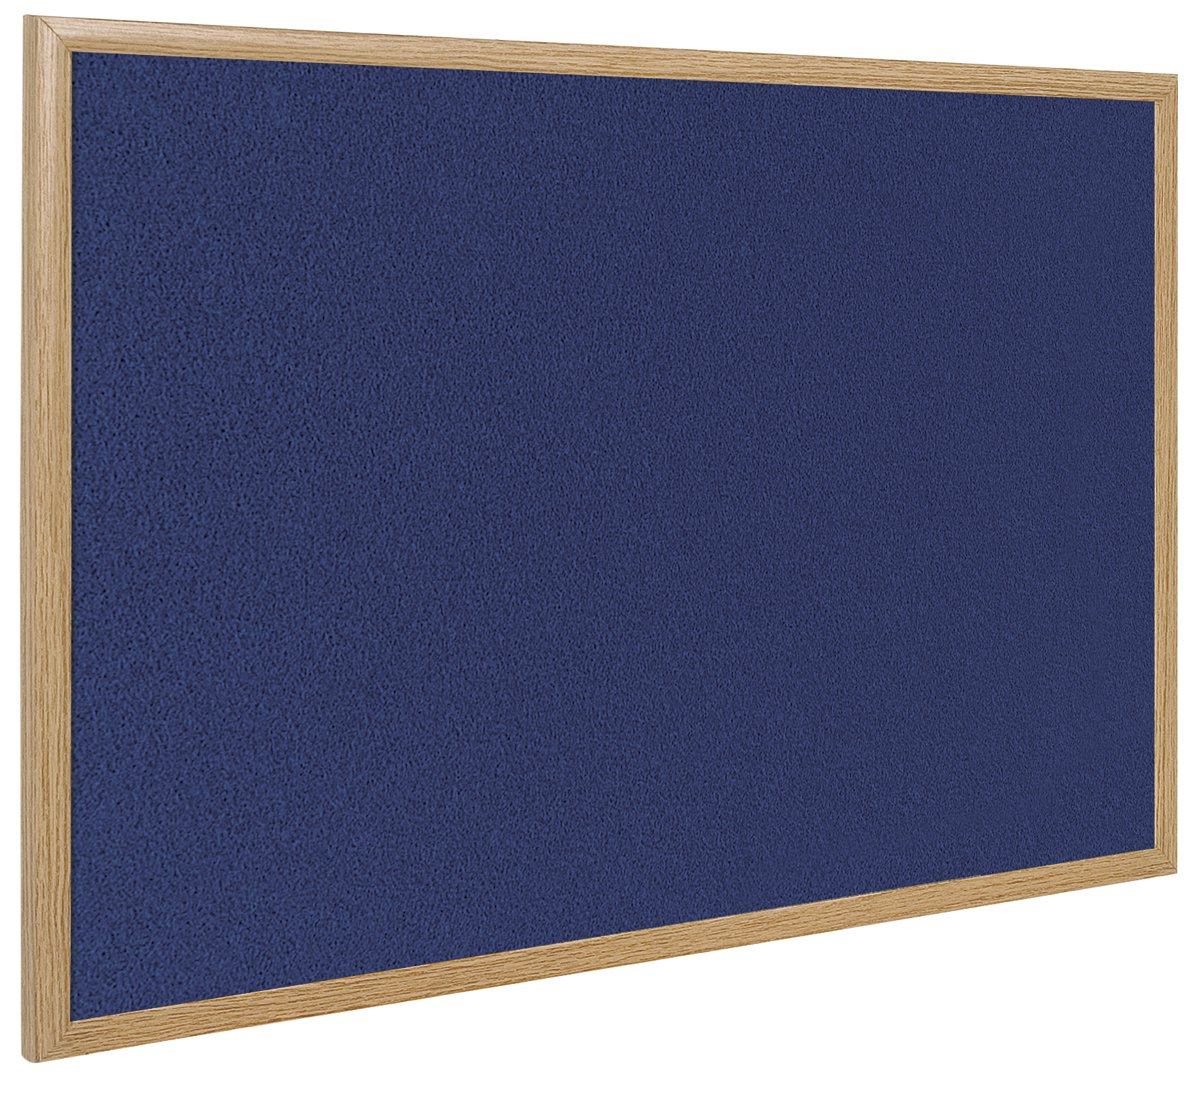 Bi-Office Earth - Notice Board, Blue Felt, Oak Finish Frame 90 x 60 cm